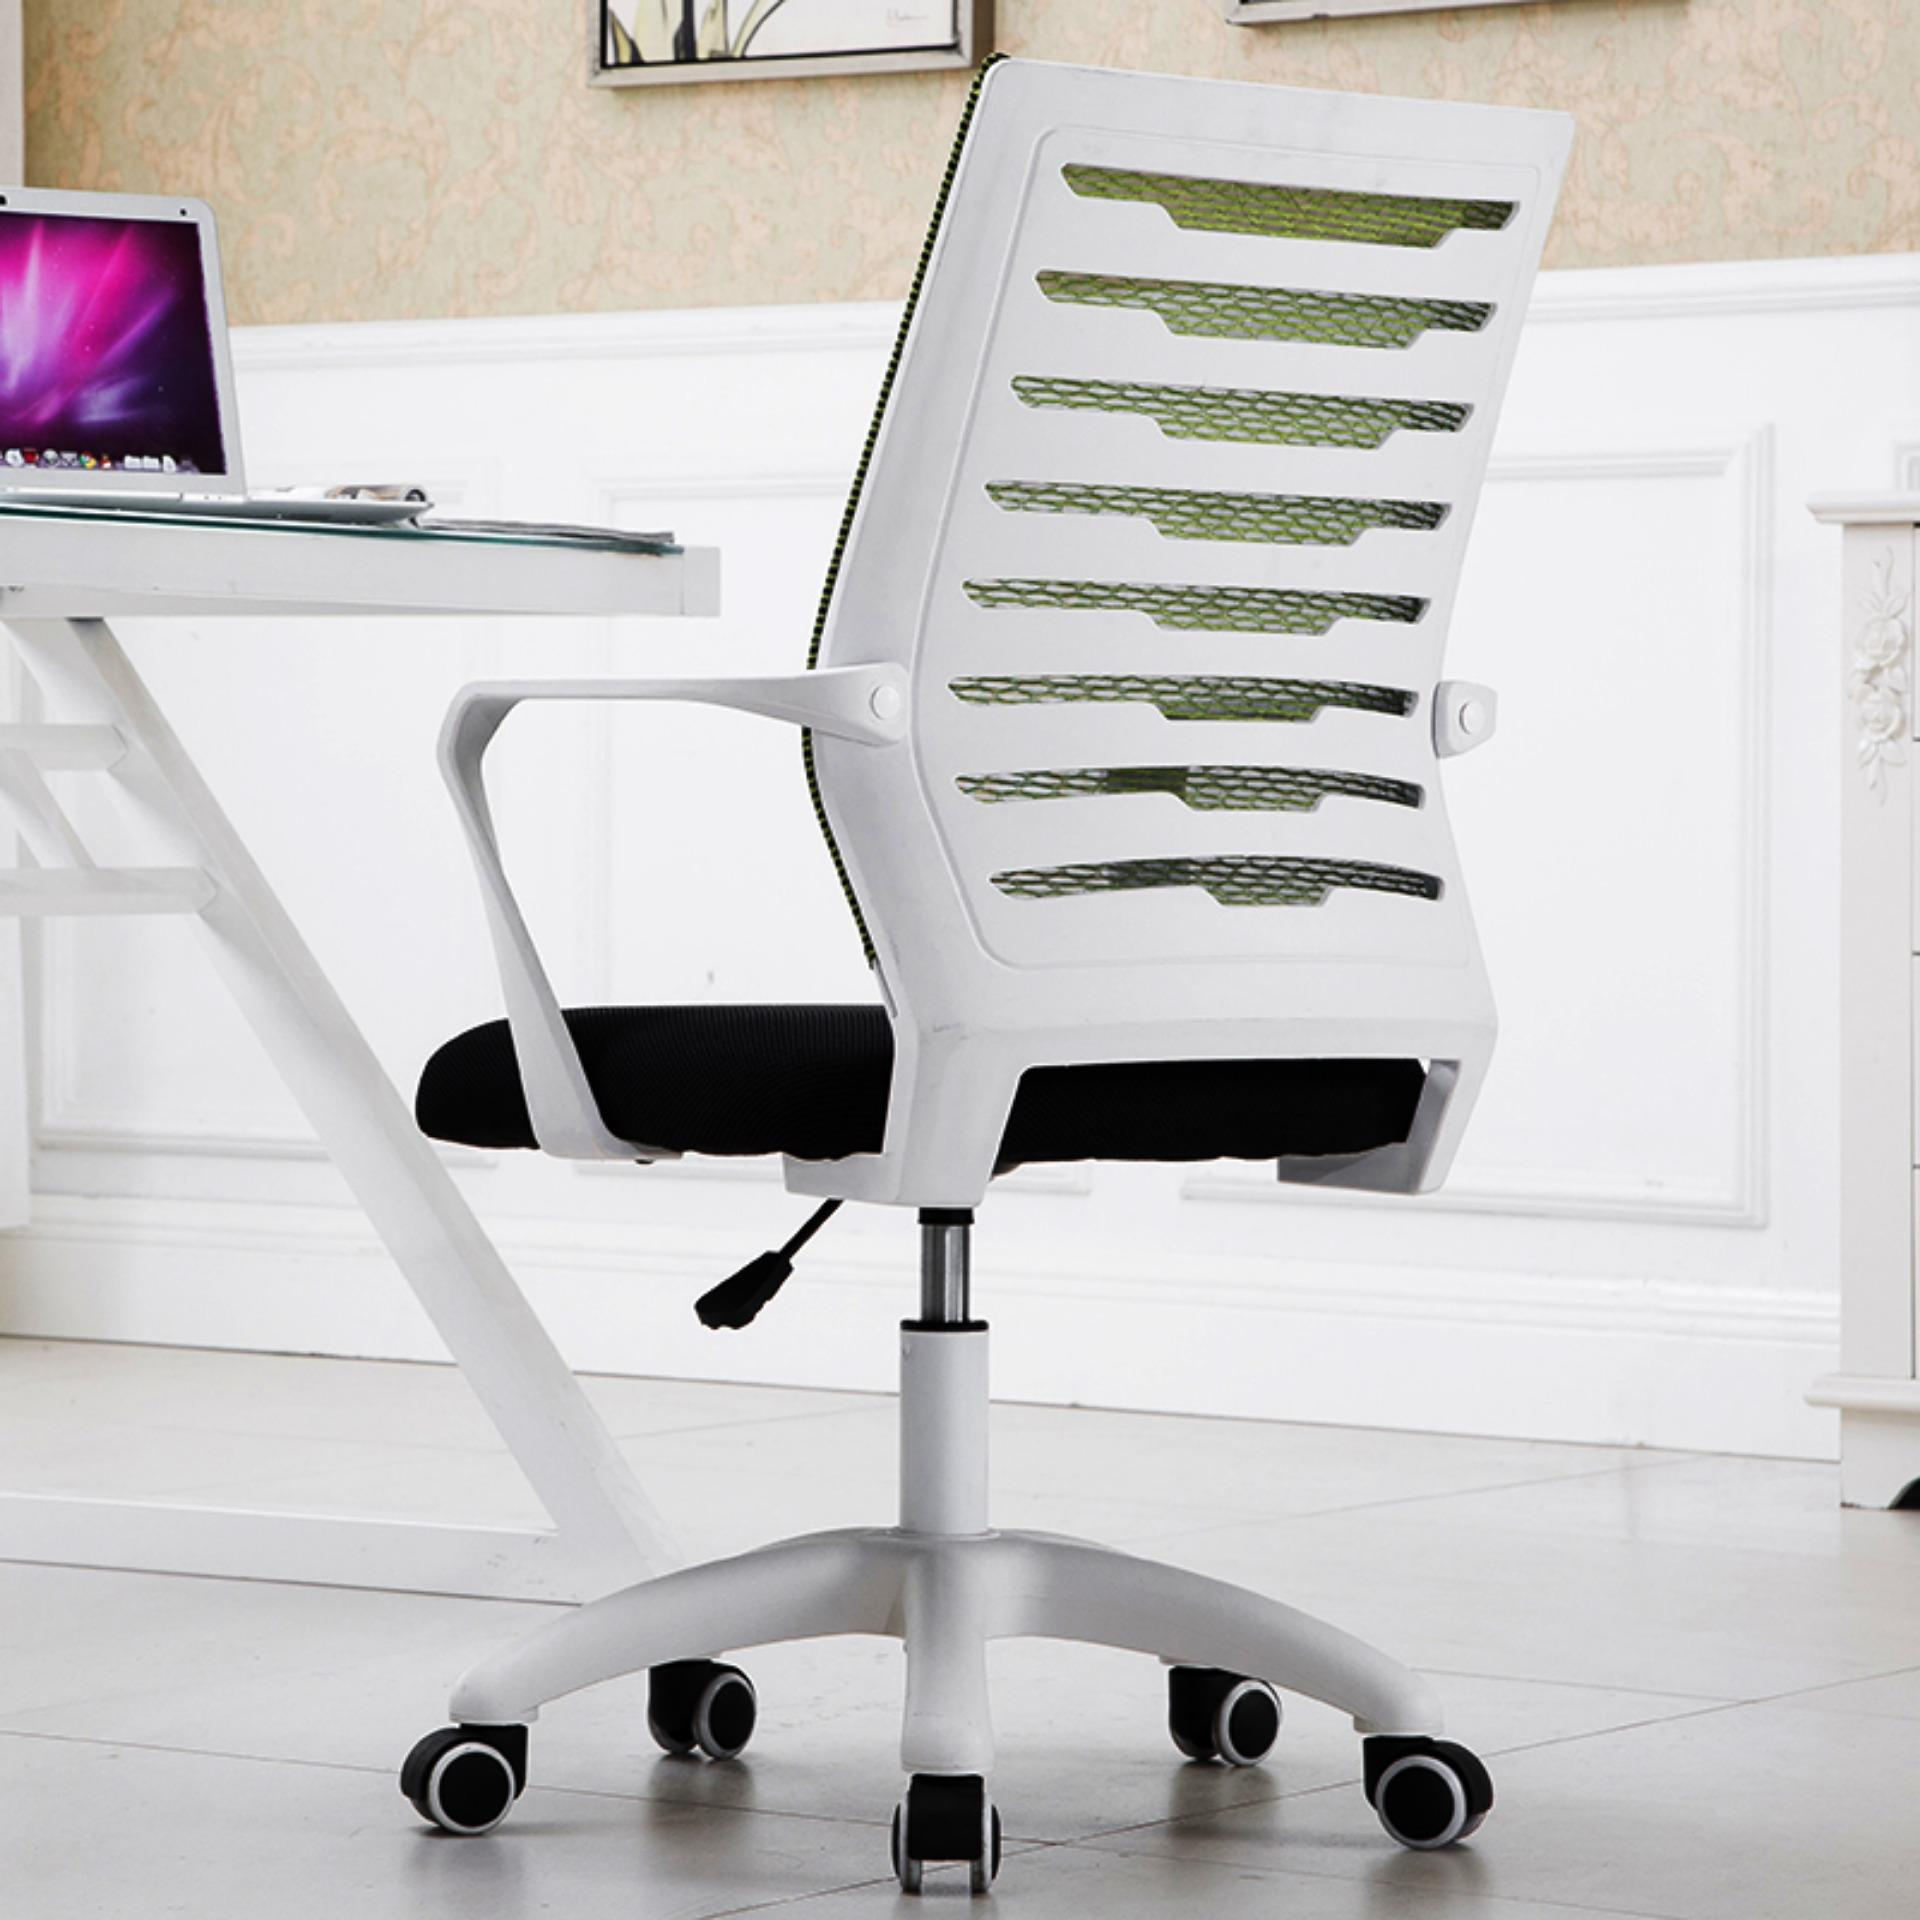 Charmant Ergonomics Design ,Best Buy For Home/ Office! Singapore